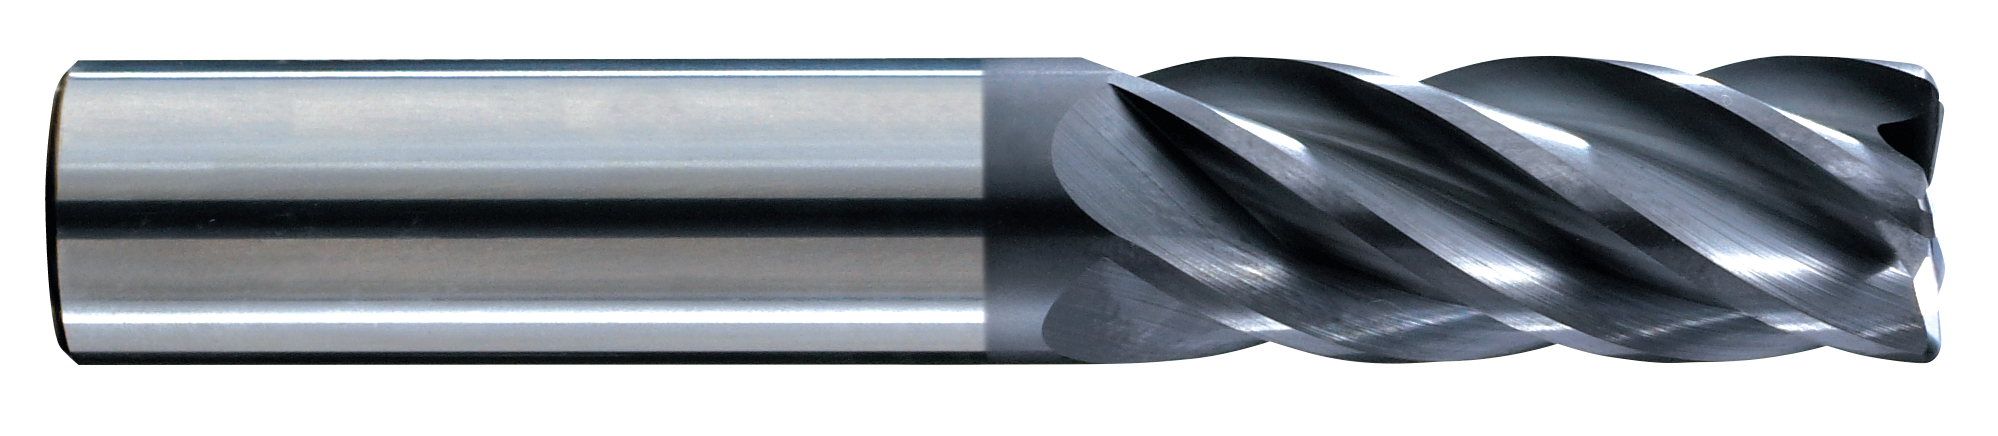 SVI Five Flute End Mill